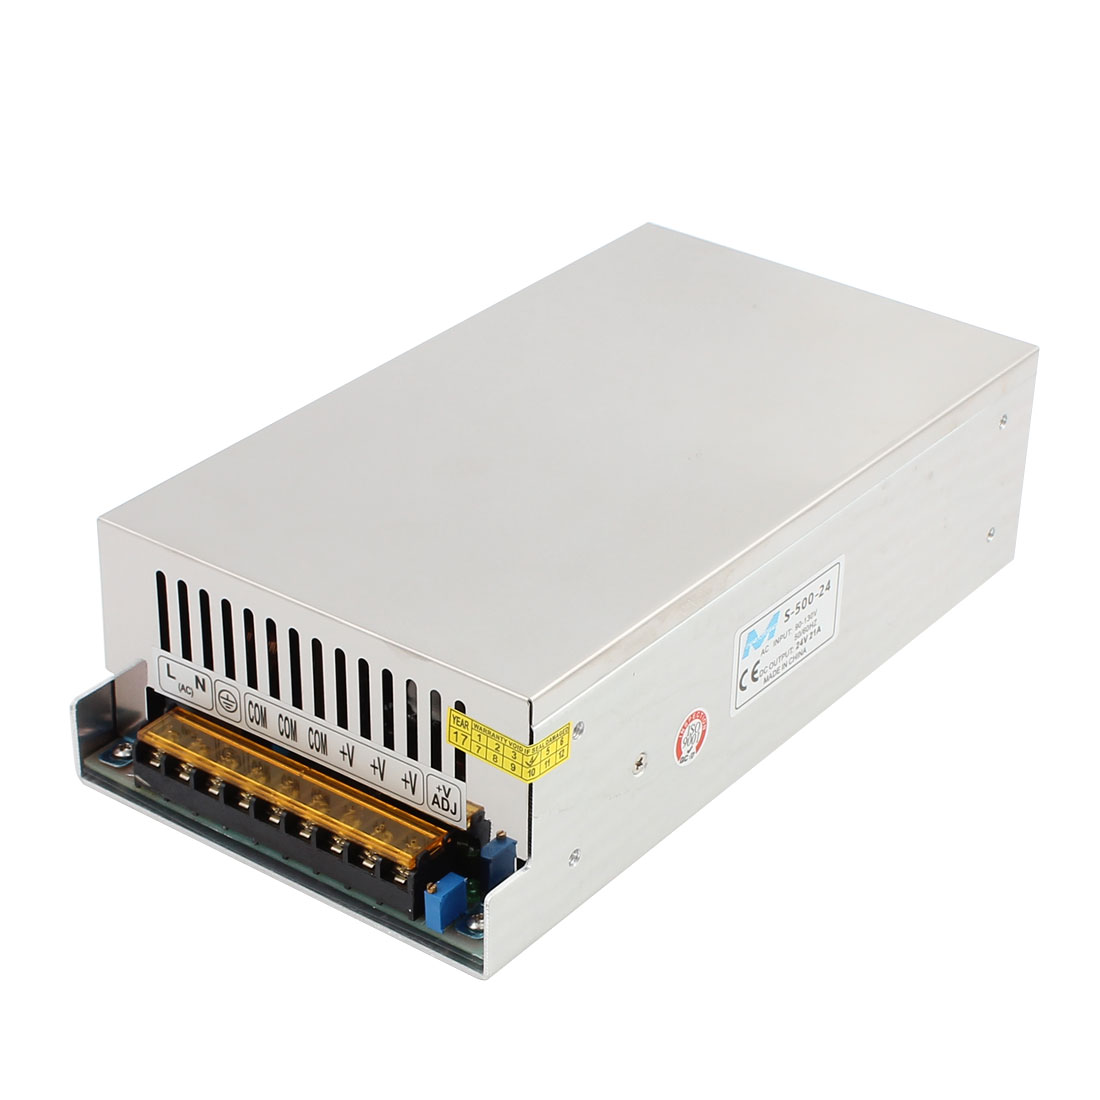 AC 110V/220V to DC 24V 25A 600W Switch Power Supply Driver S-600-24 for LED Strip Light